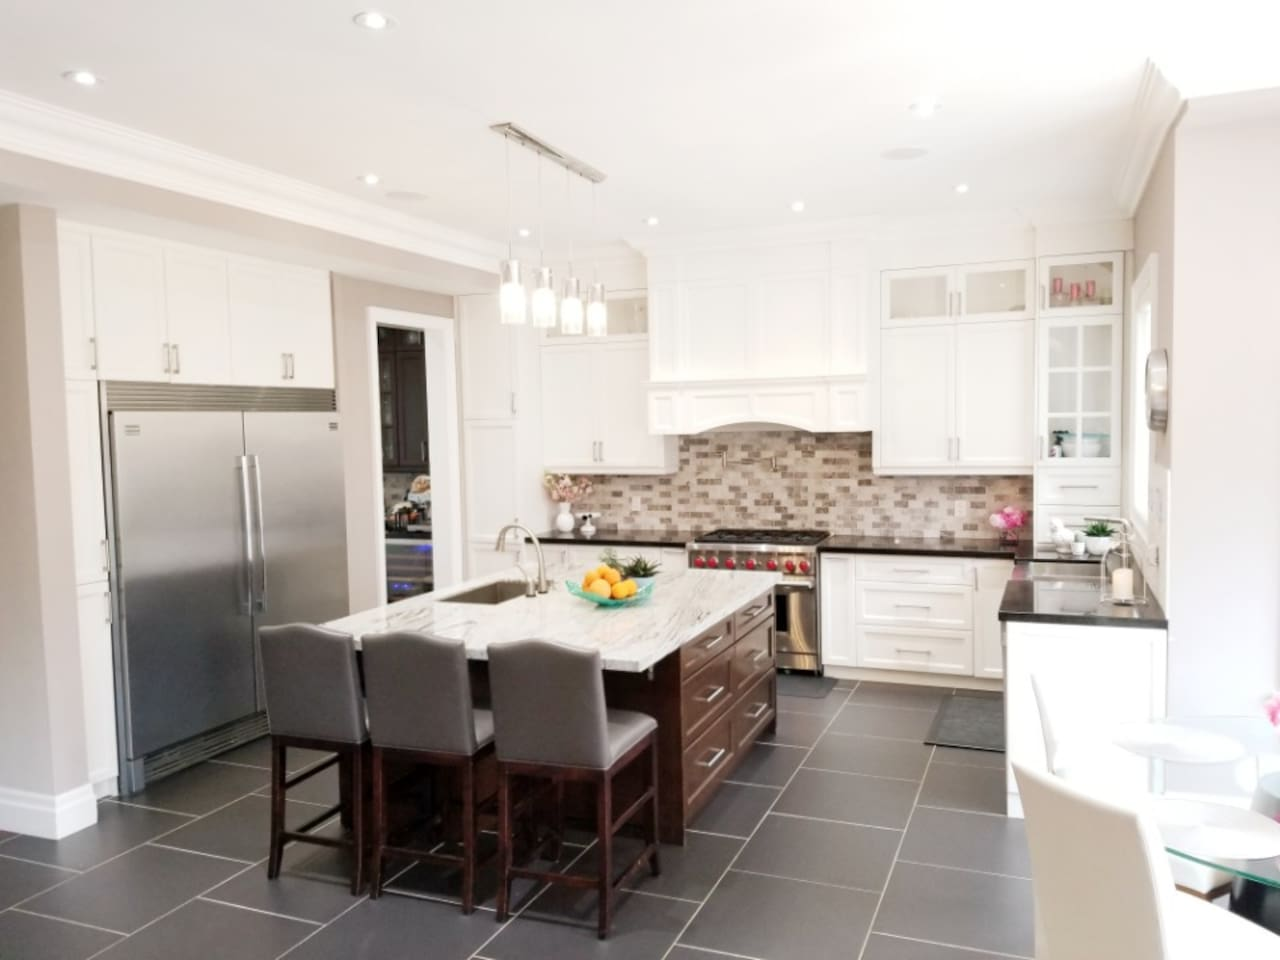 Large designer kitchen with two large sinks